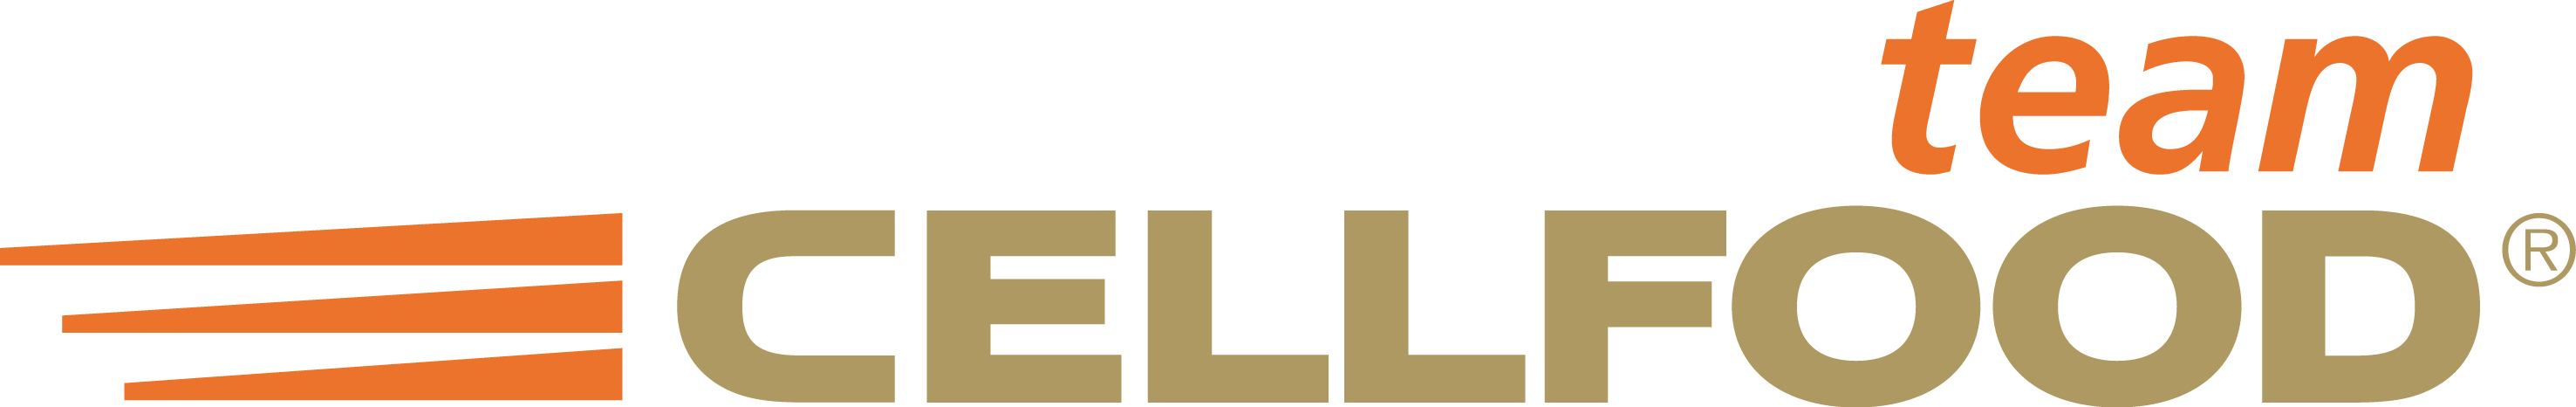 http://motionup.emotiondesign.it/CLIENTI/cellfood/img/news/2011171231__cellfood_logo.jpg